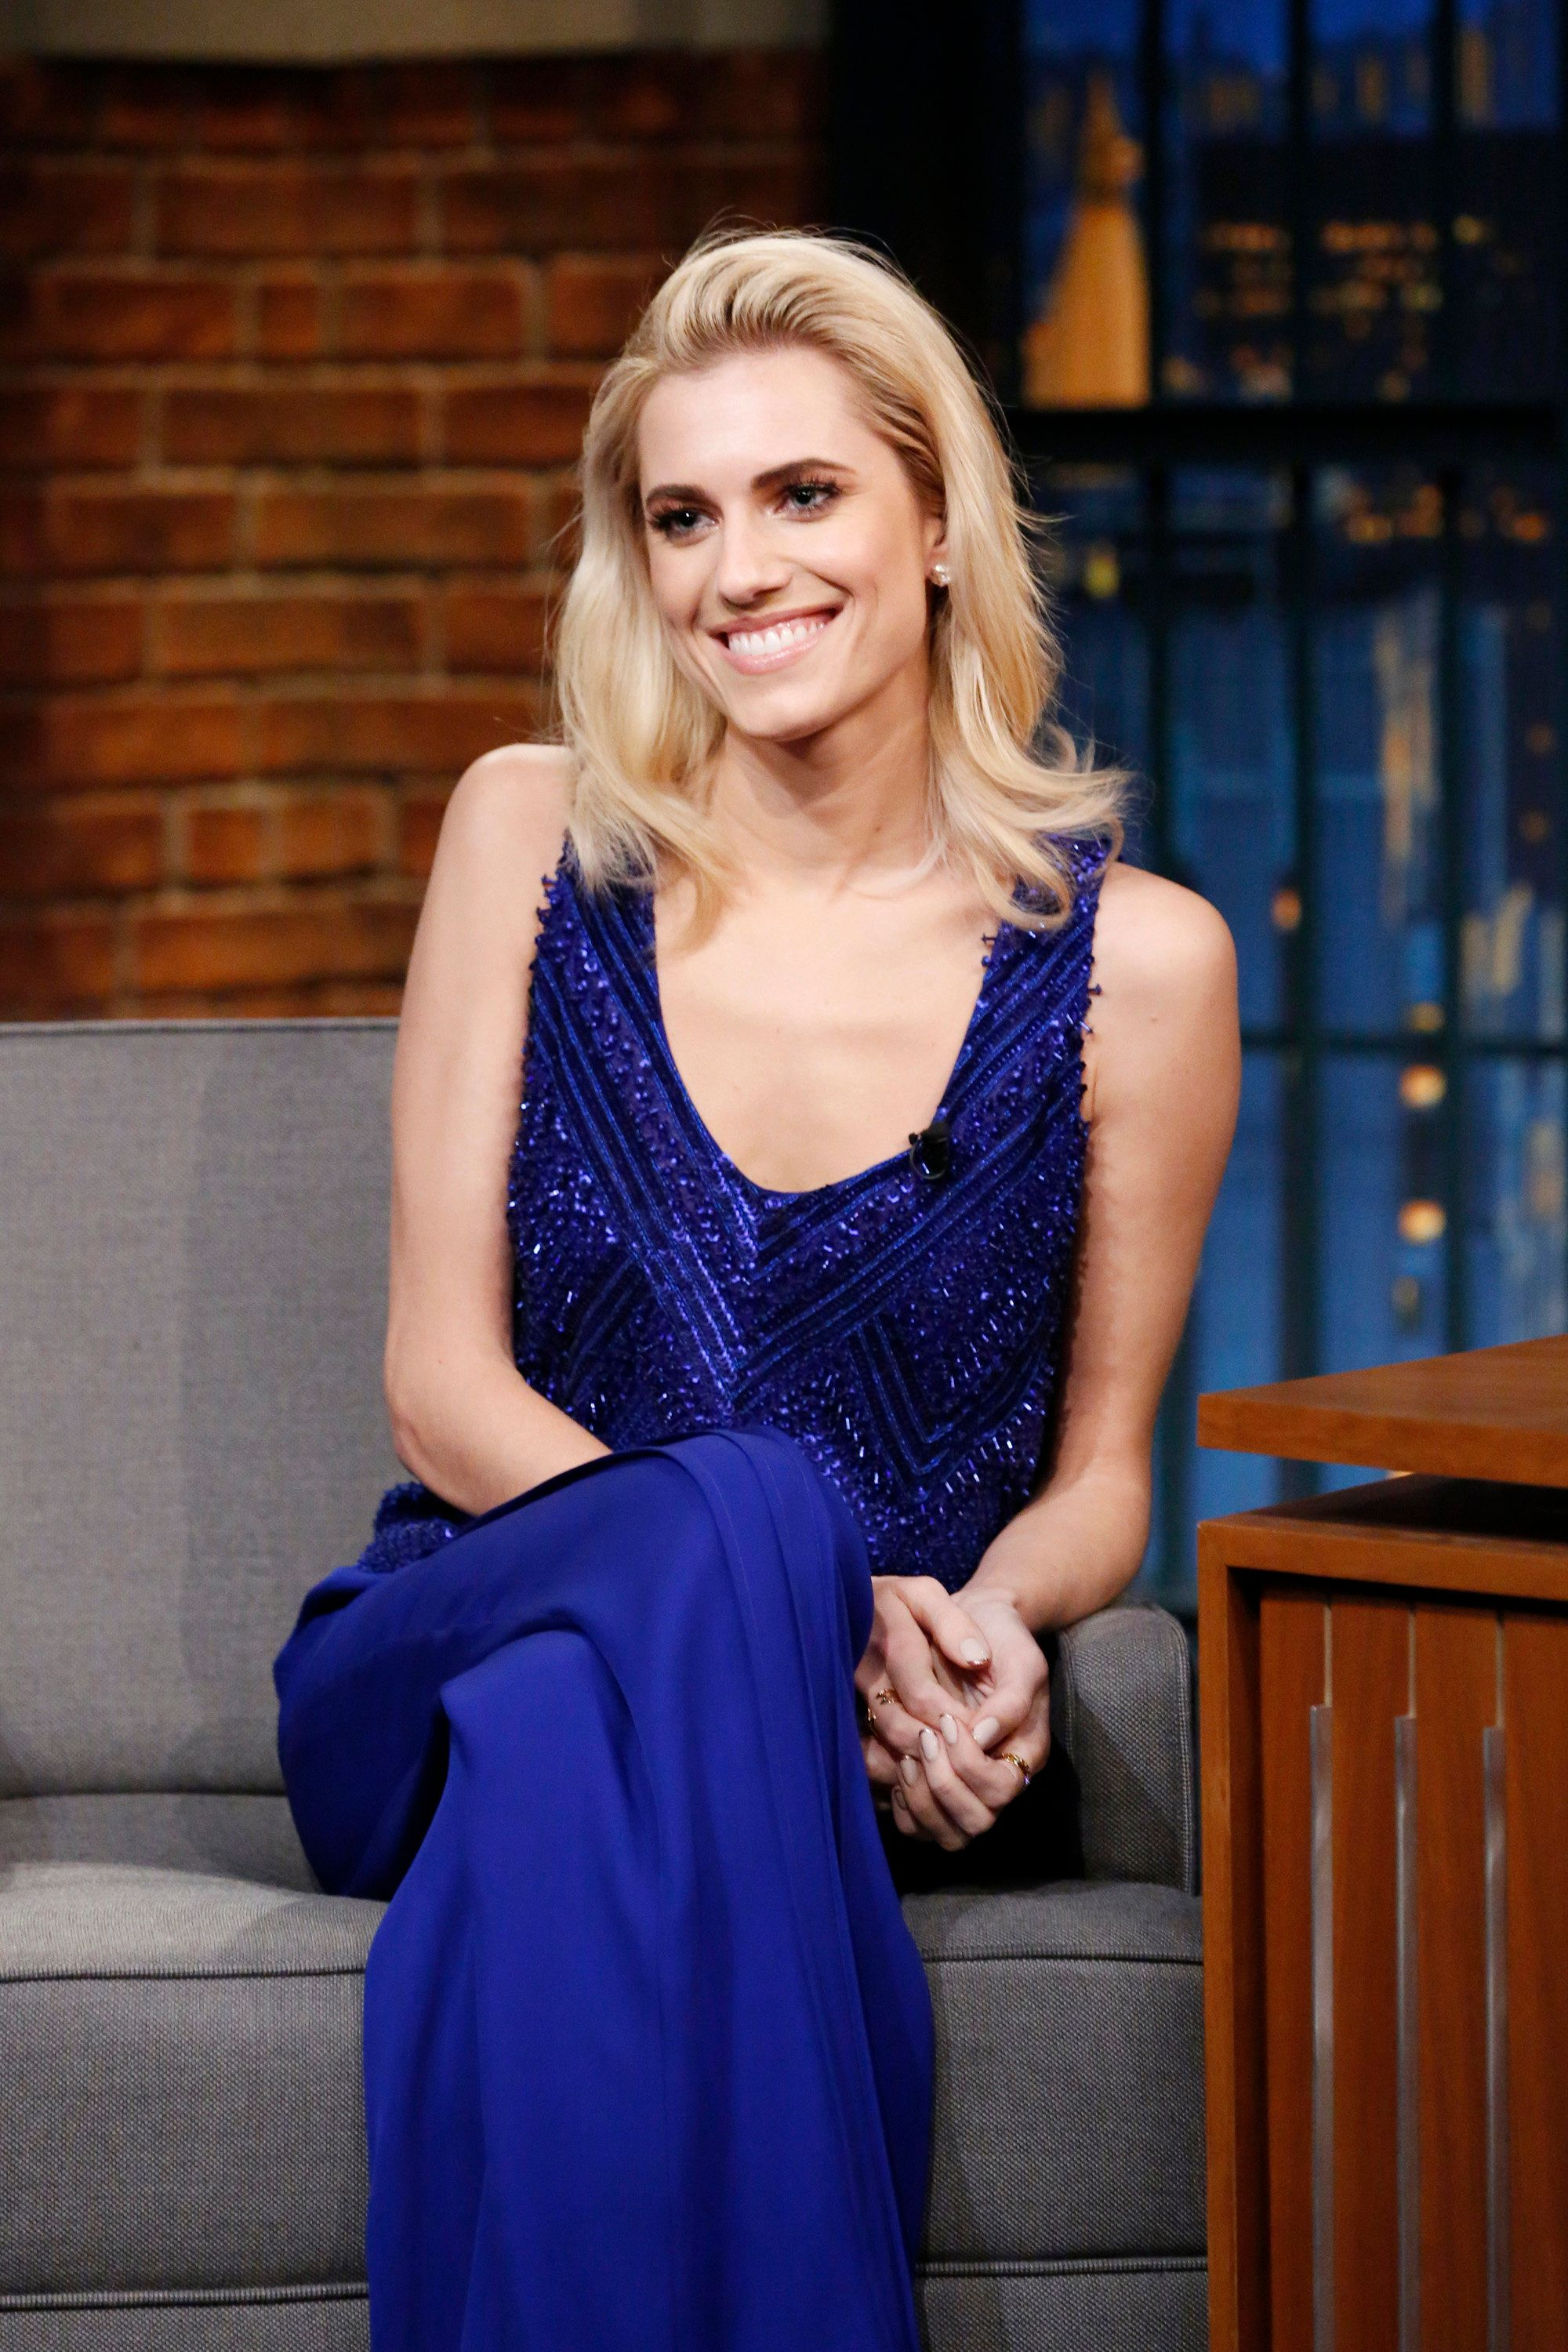 LATE NIGHT WITH SETH MEYERS -- Episode 495 -- Pictured: Actress Allison Williams during an interview on  February 23, 2017 -- (Photo by: Lloyd Bishop/NBC/NBCU Photo Bank via Getty Images)